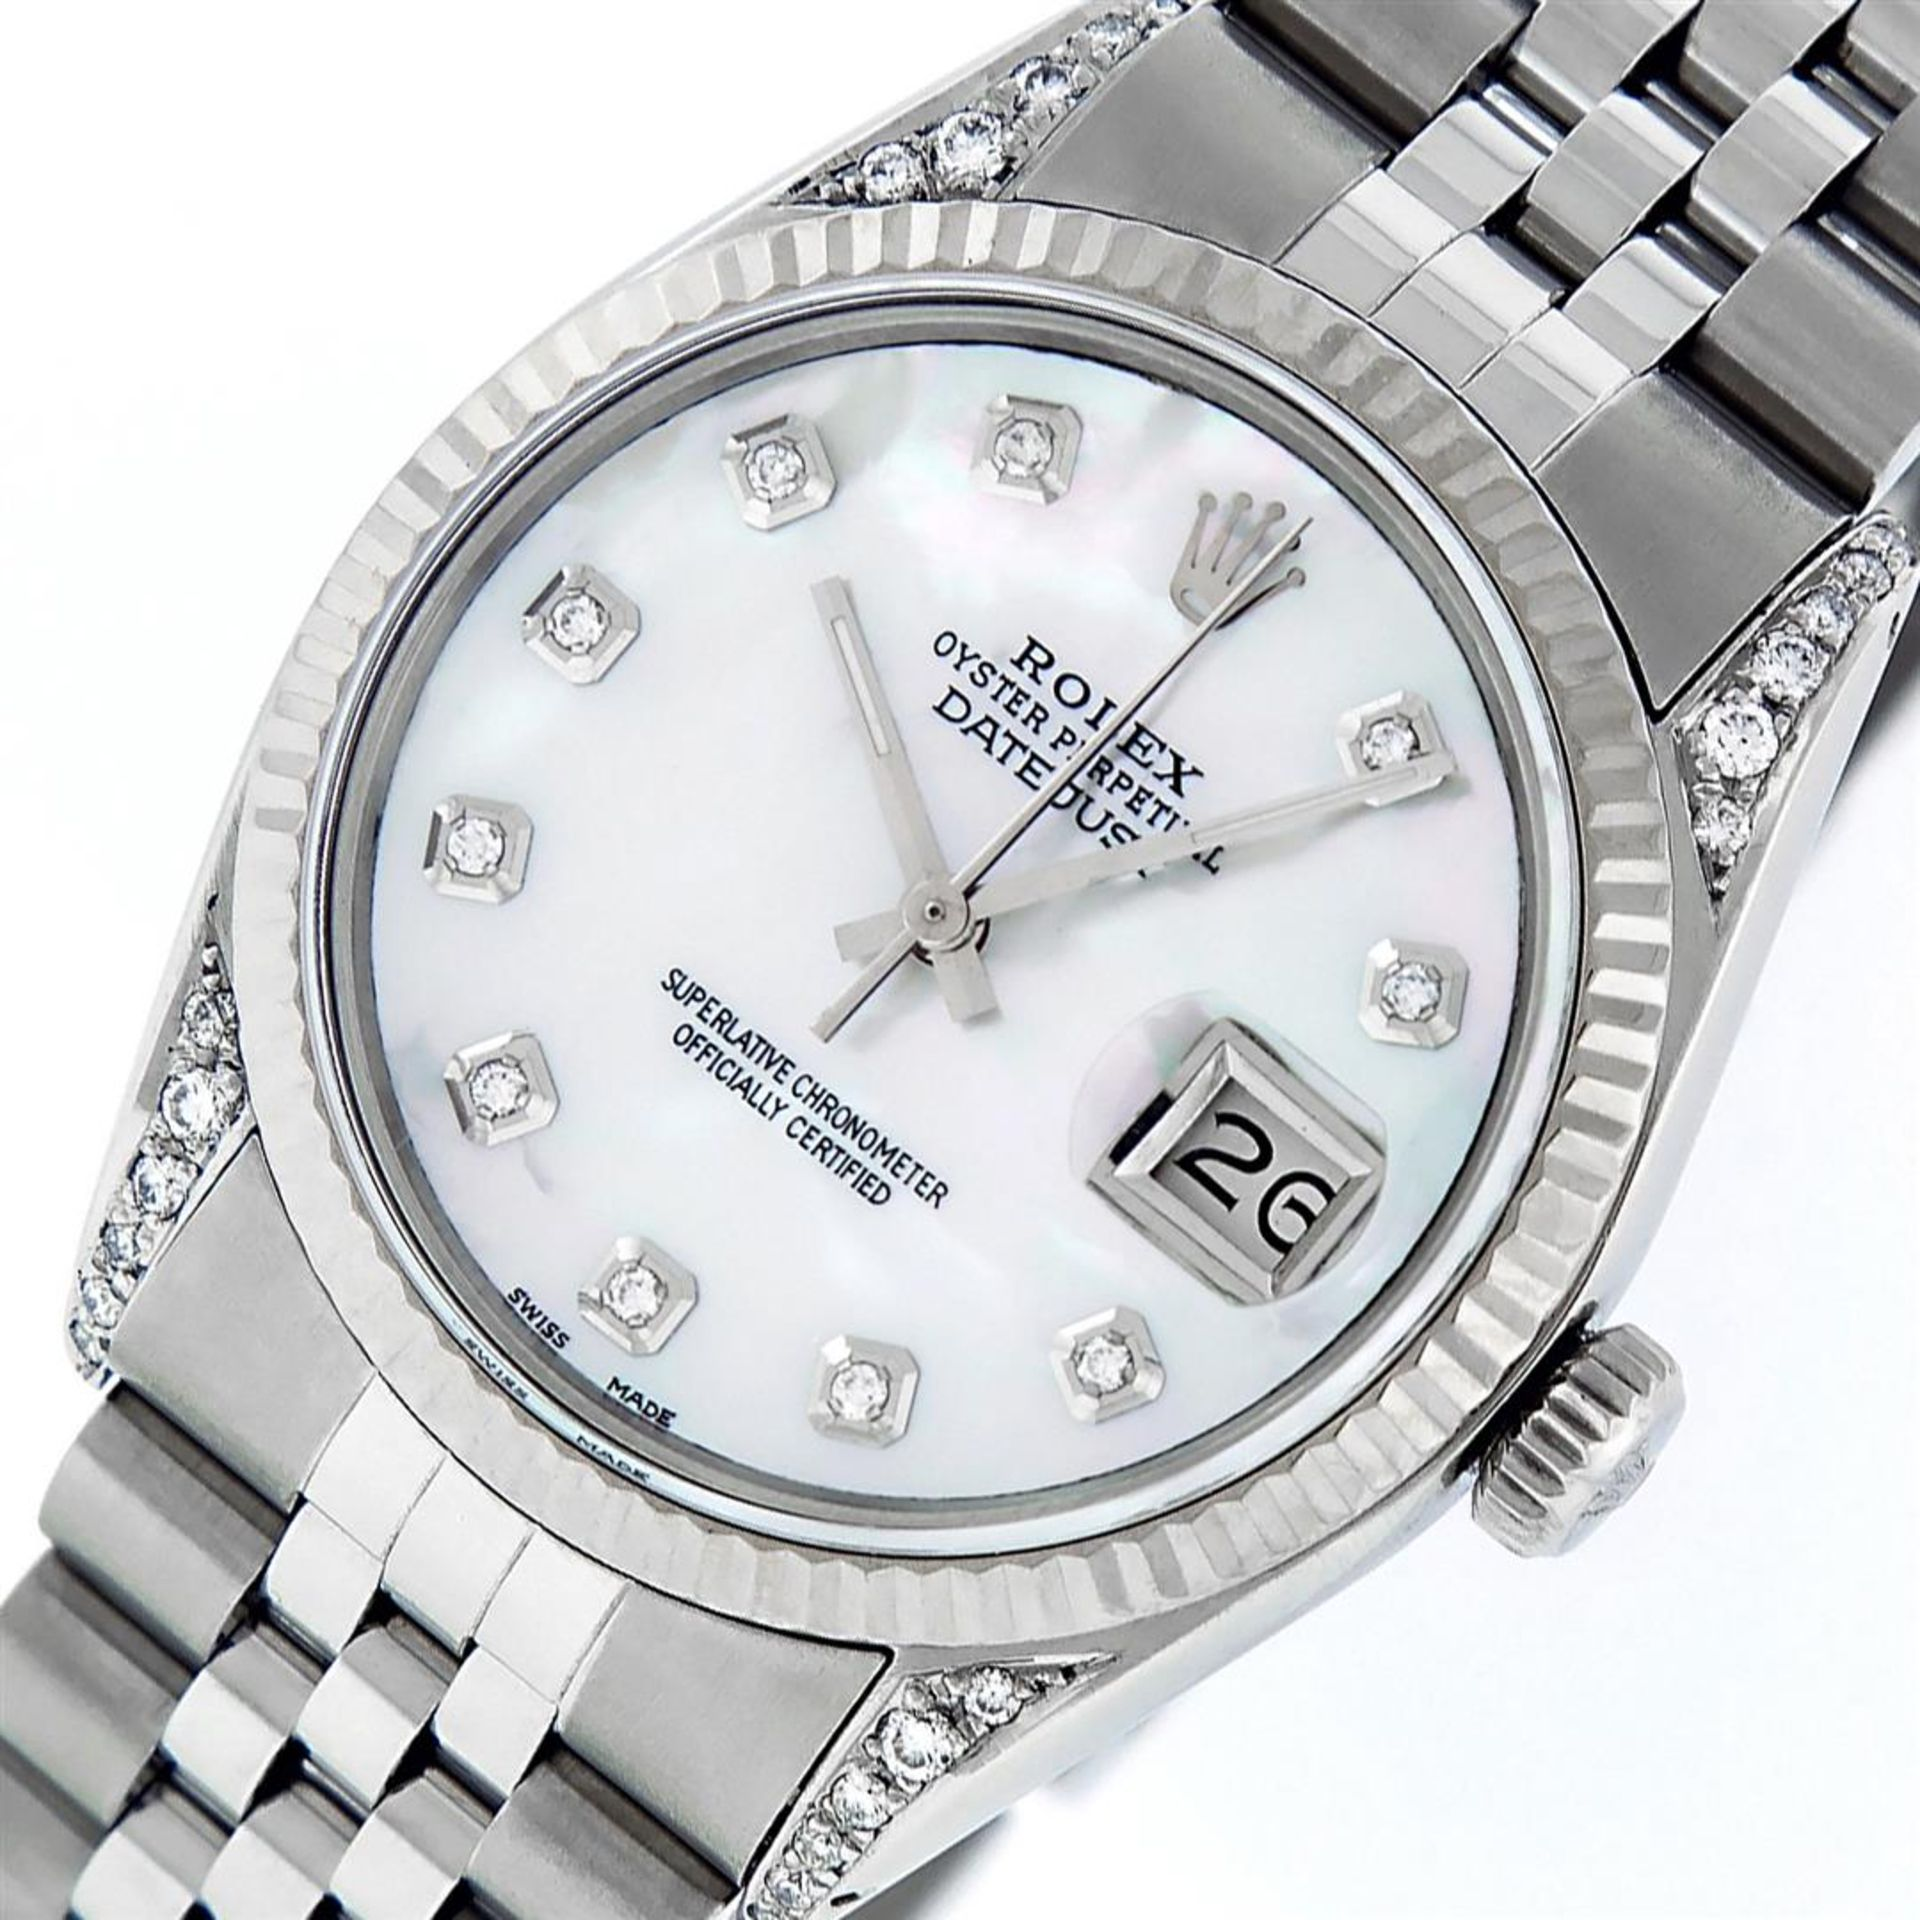 Rolex Mens Stainless Steel Mother Of Pearl Diamond Lugs 36MM Datejust Wristwatch - Image 2 of 8